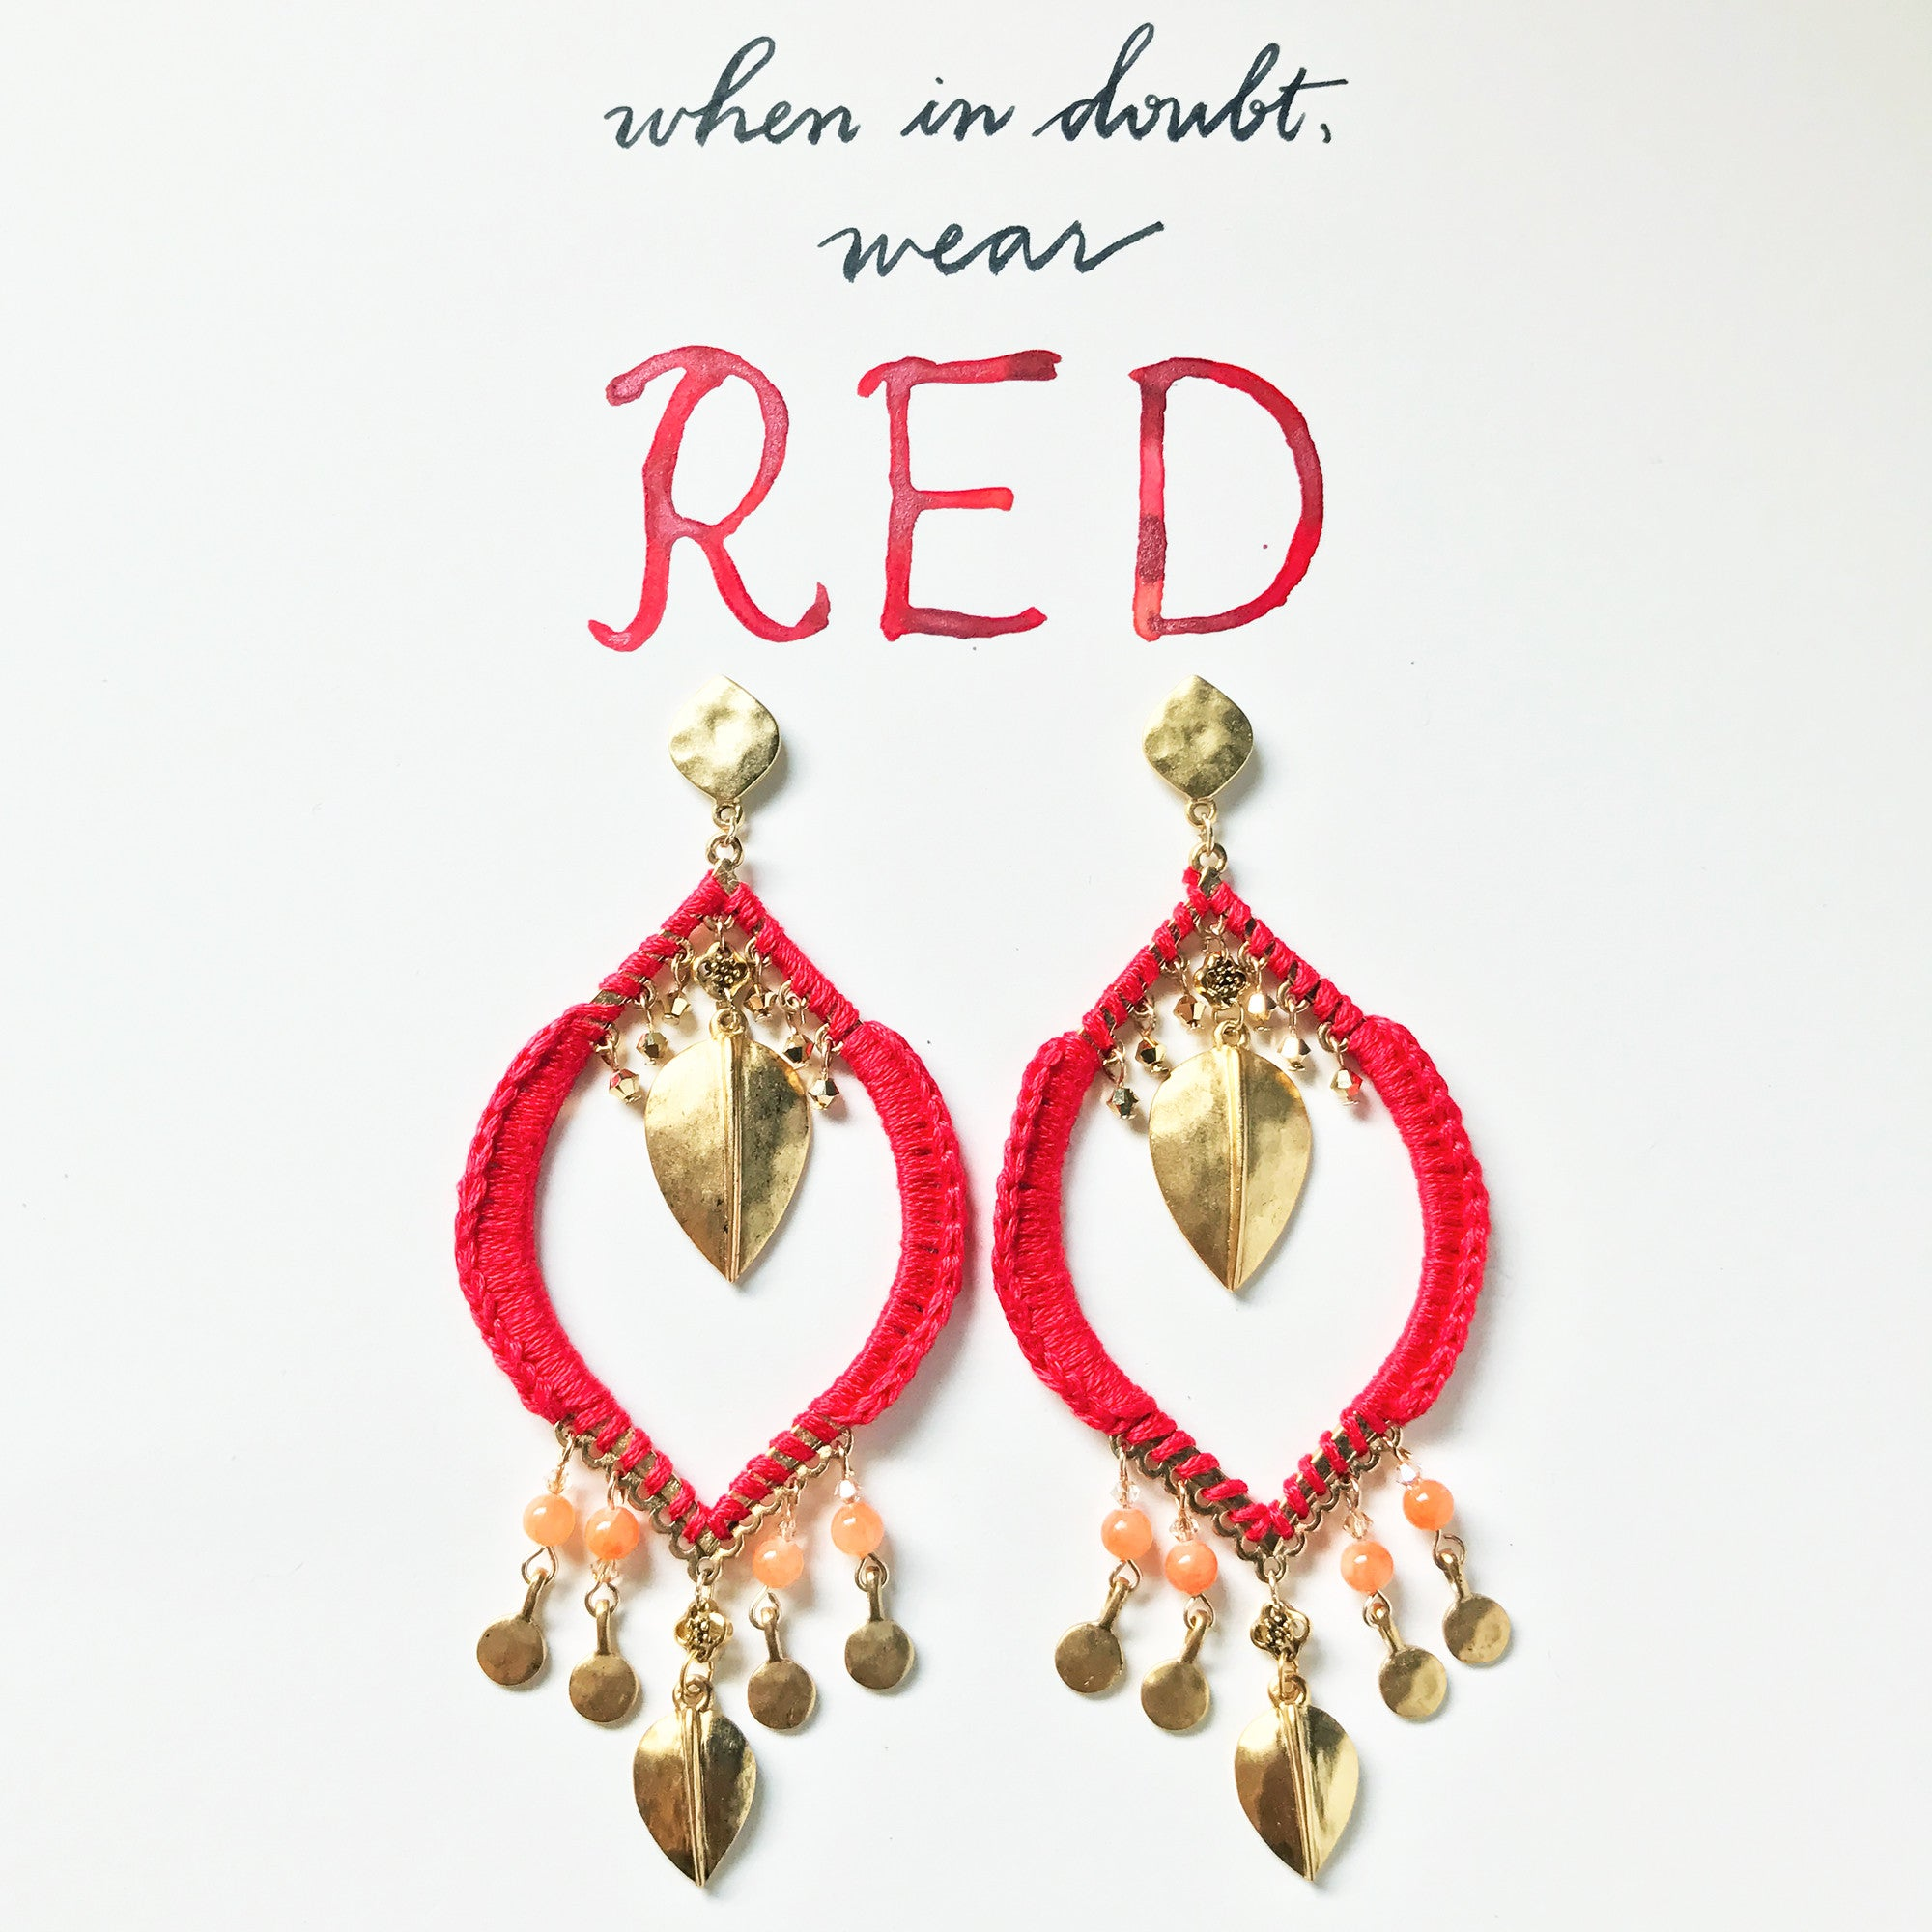 #SequinSayings - When in doubt, wear RED